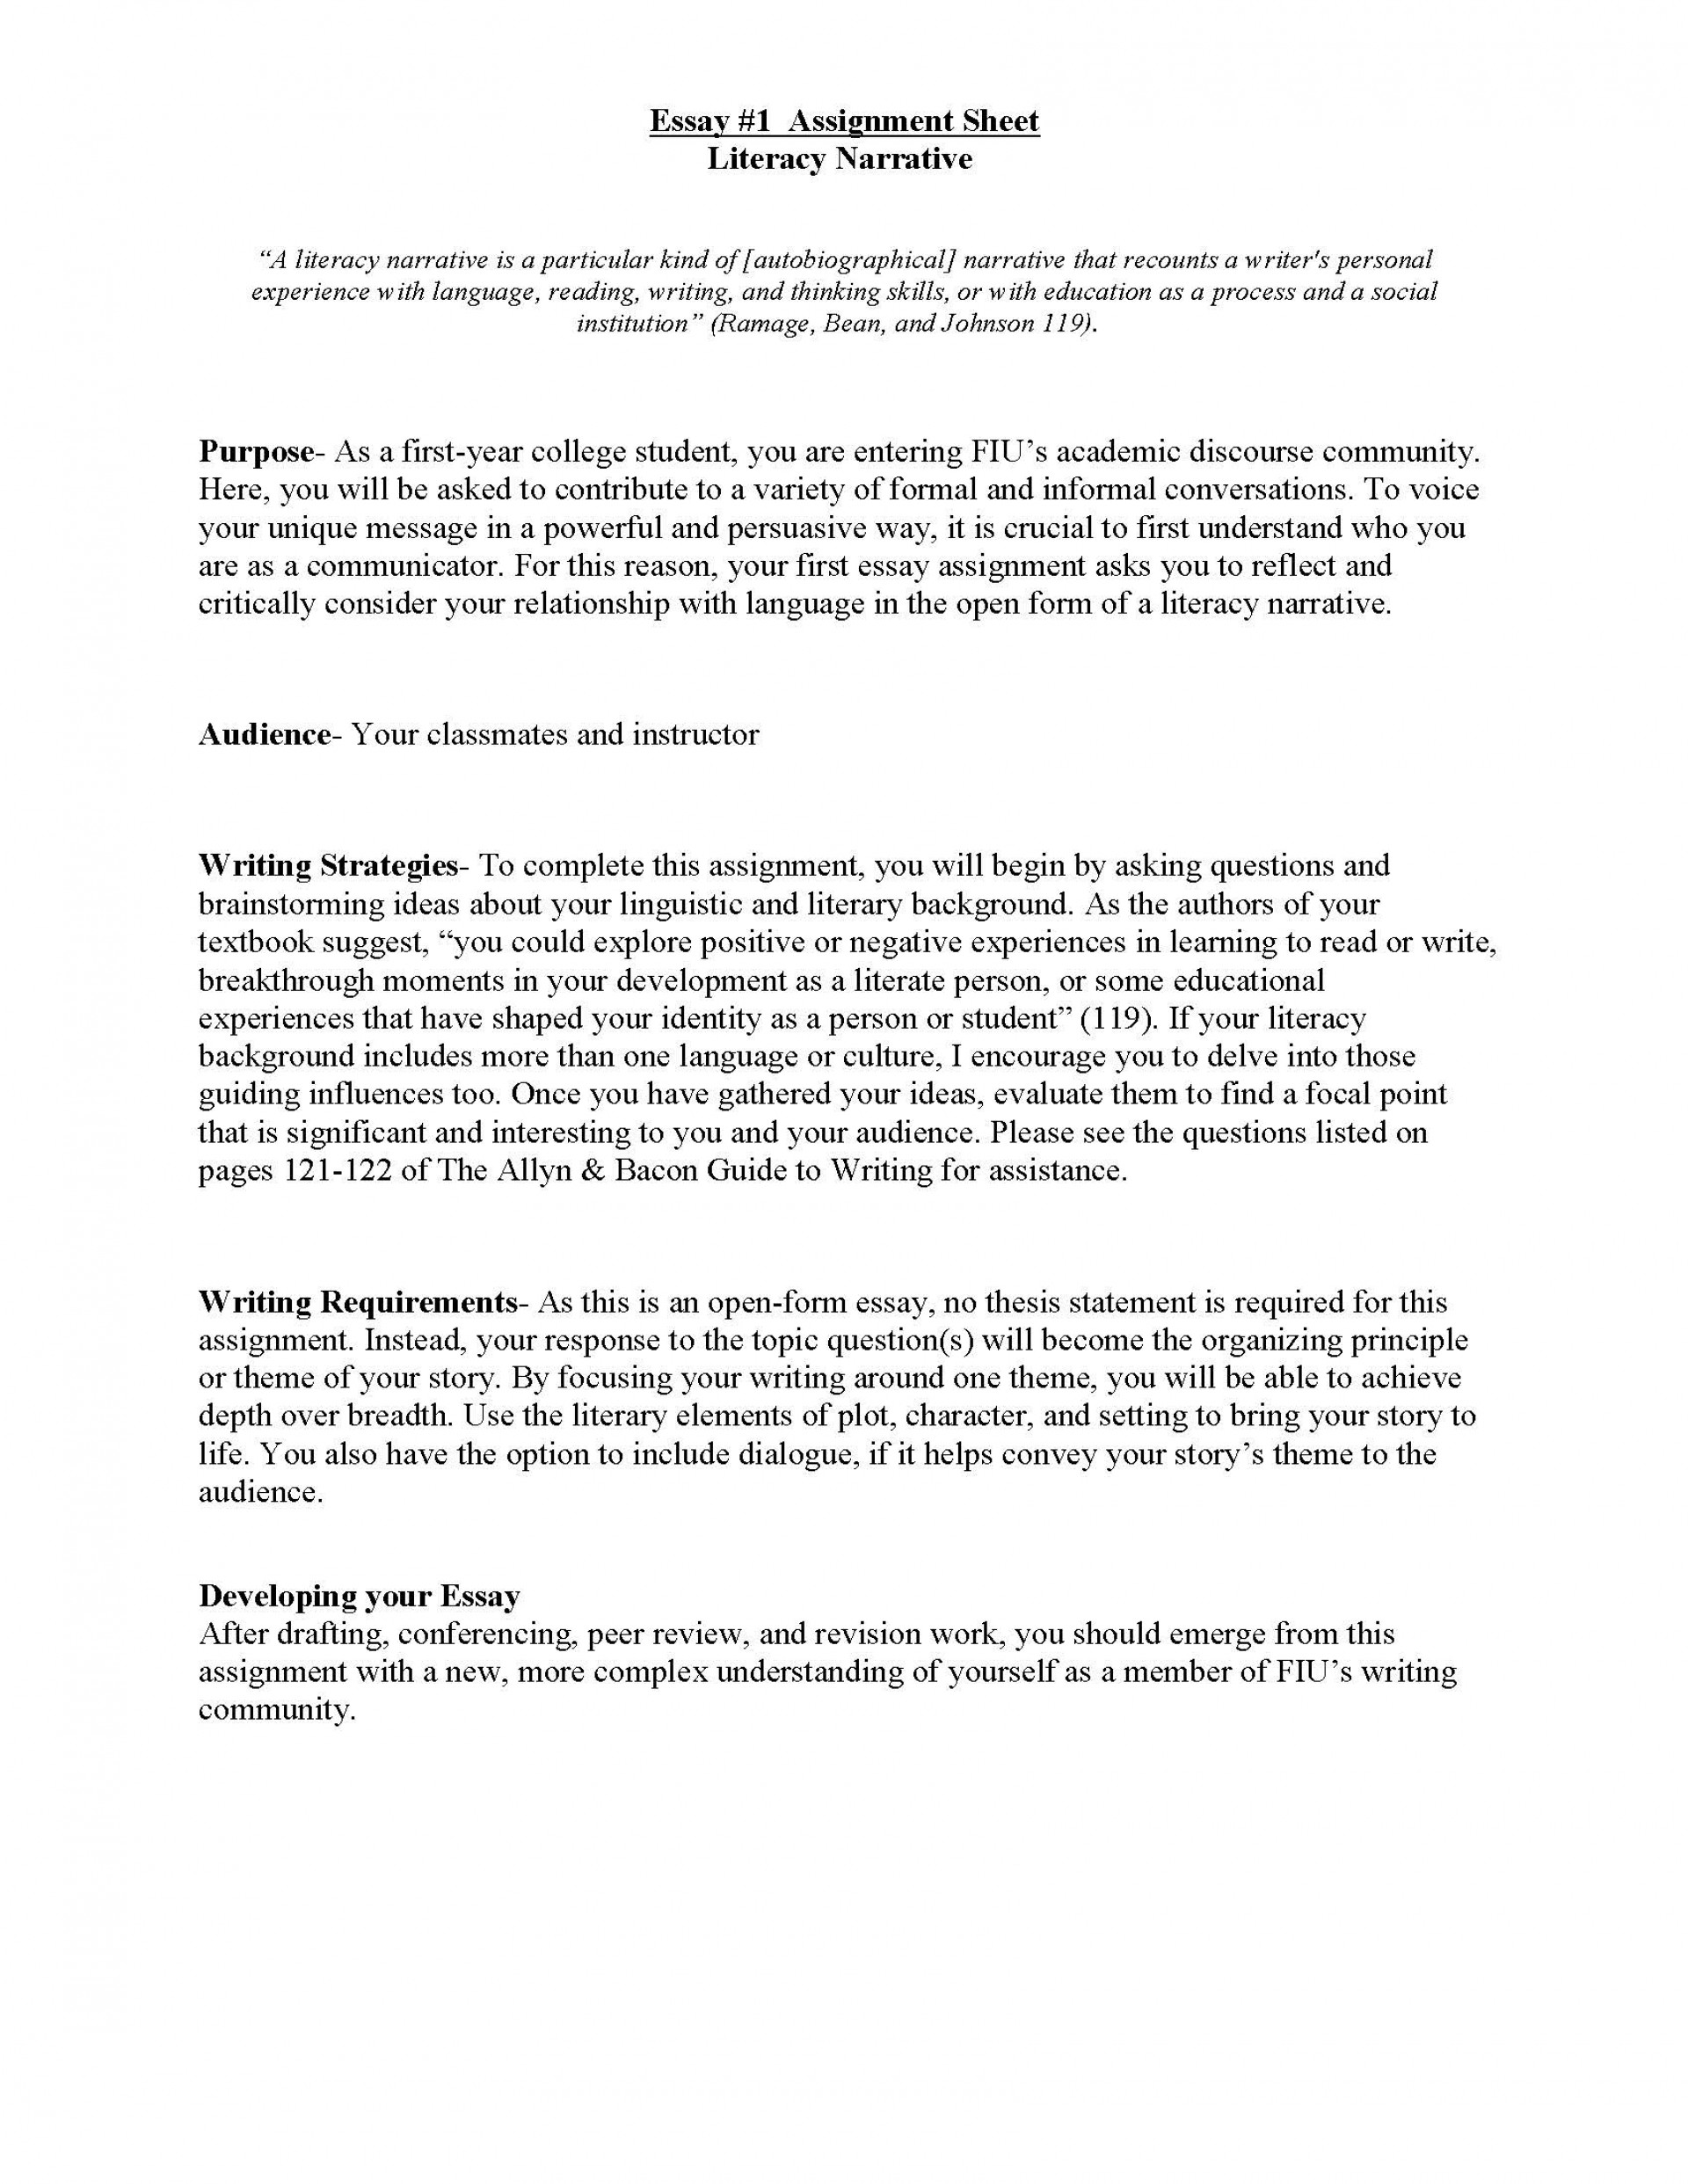 010 What Are Critical Elements Of Descriptive Essays Literacy Narrative Unit Assignment Spring 2012 Page 1 Essay Shocking The 1920